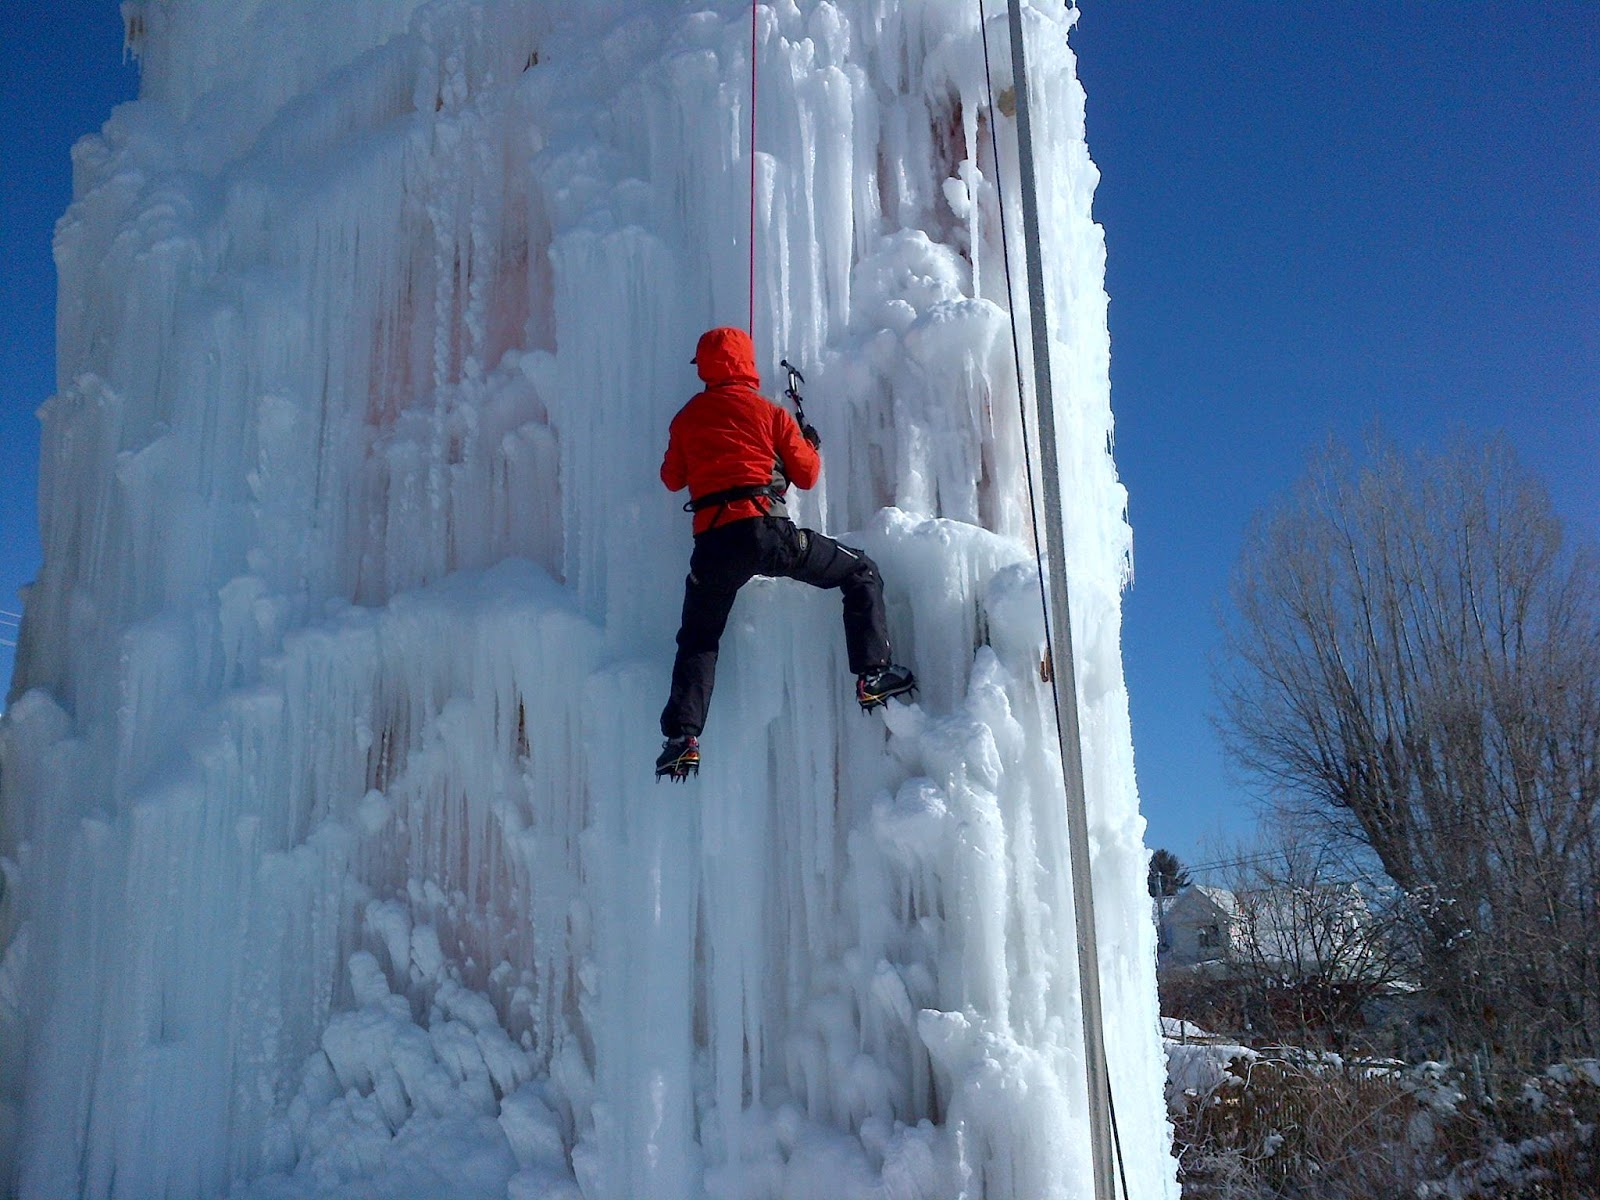 Ice Fall Wallpaper Enjoy Utah 45 Foot Ice Climbing Wall Now Open In Midway